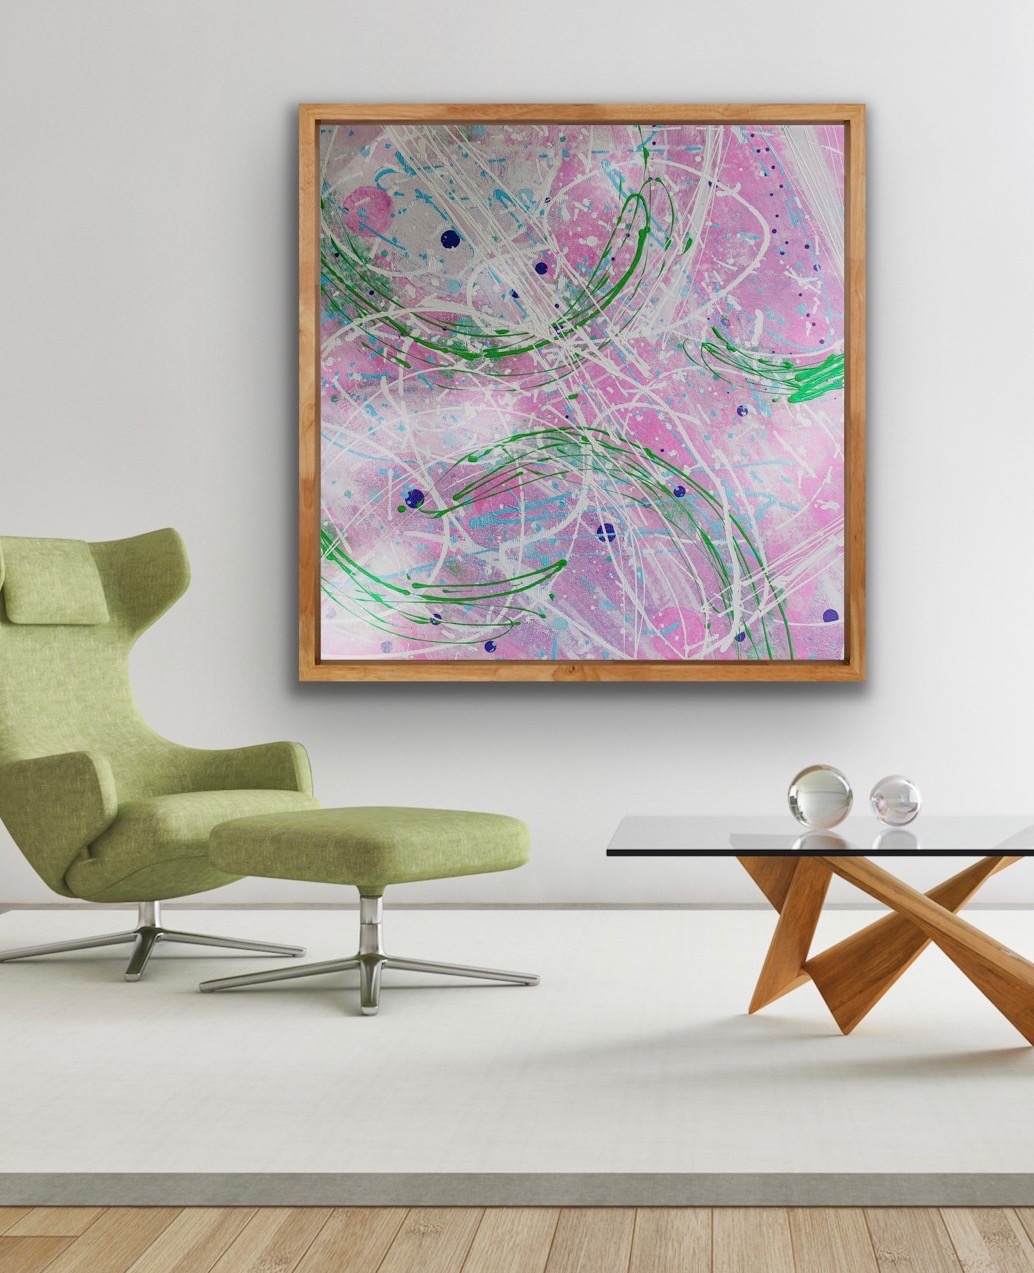 puzzled 2020, abstract painting by Michelle Capizzi